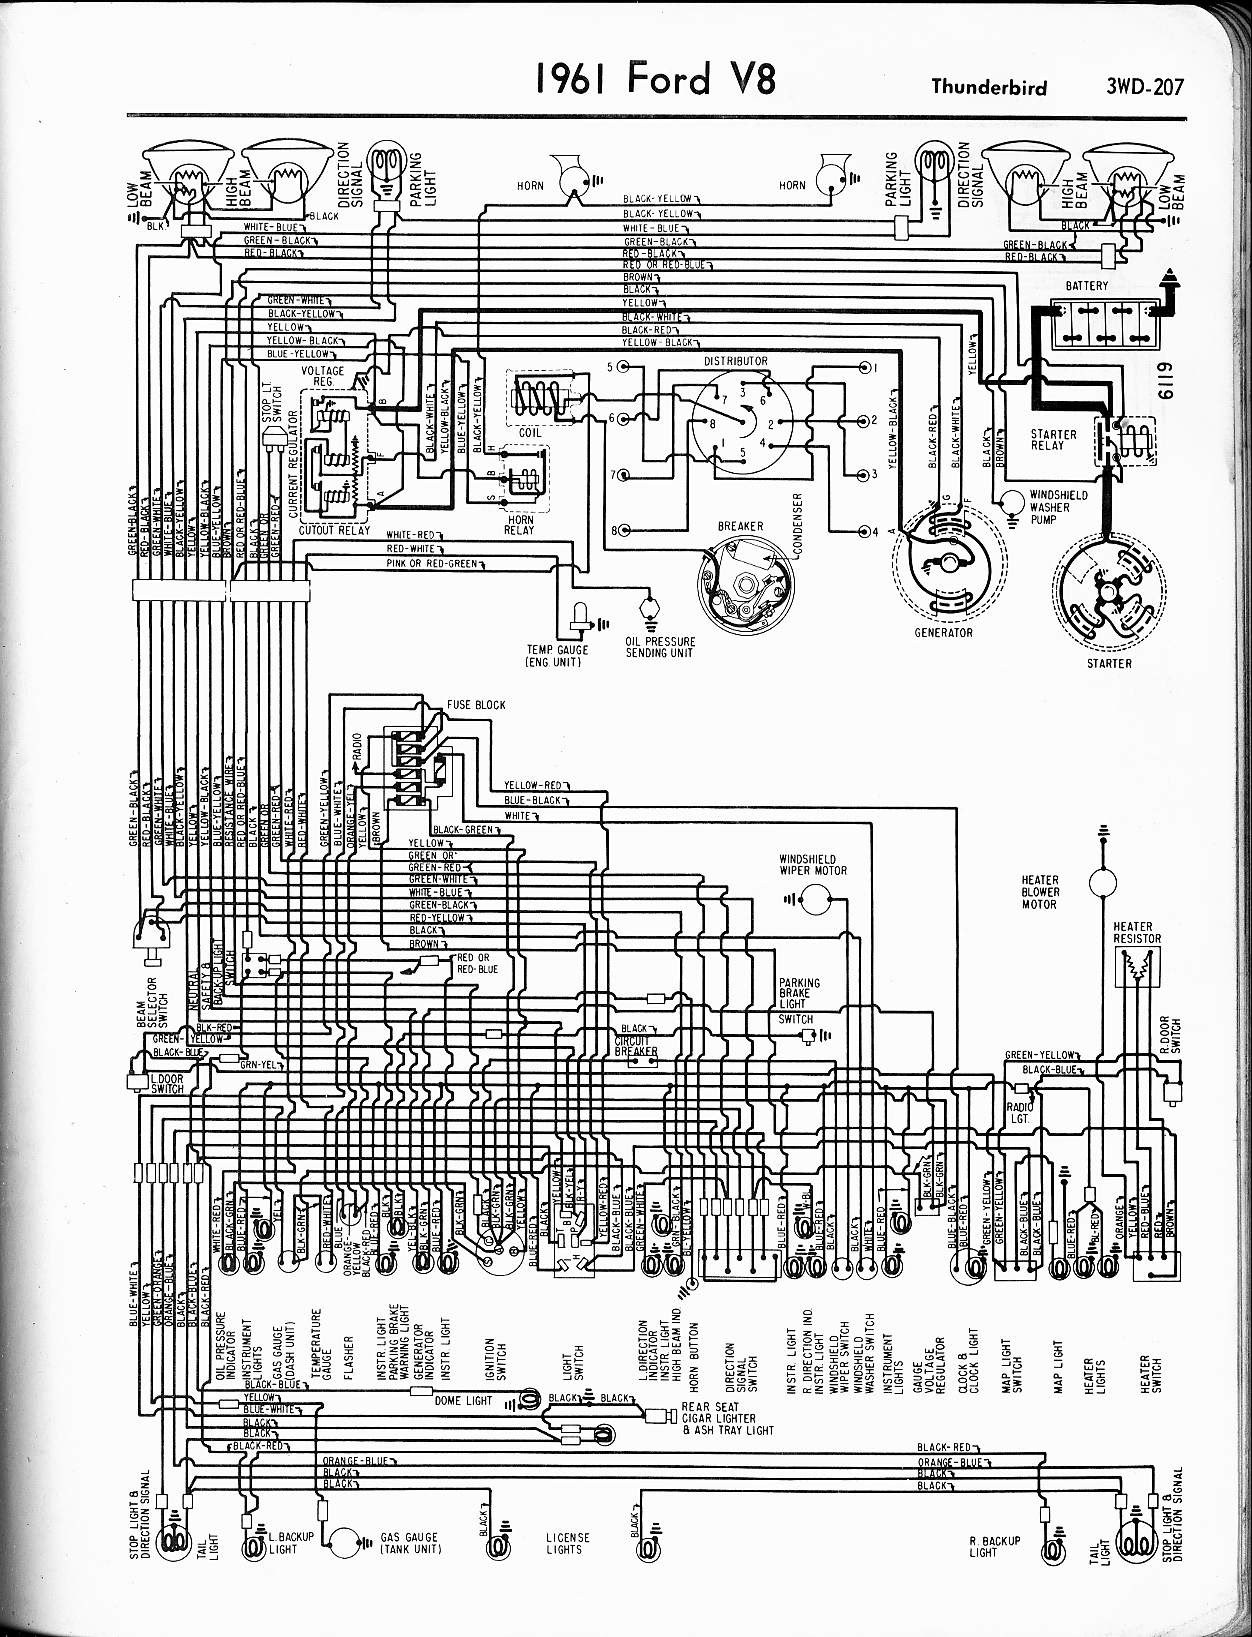 1957 Ford Wiring Diagram Wiring Diagram Motor Motor Frankmotors Es